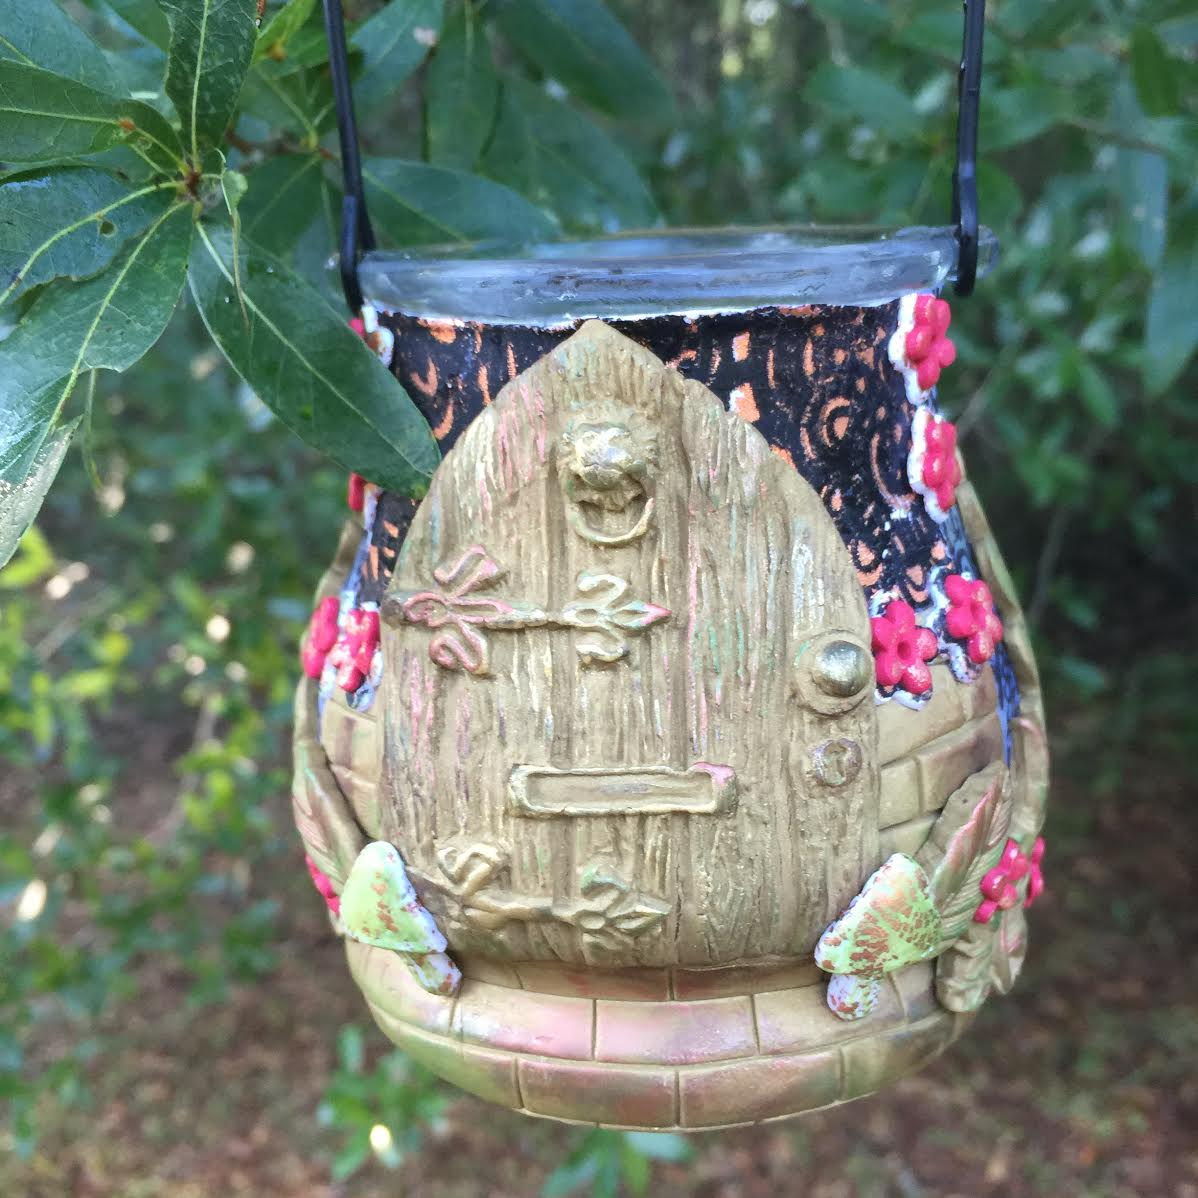 Boy did I have fun making this polymer clay fairy lantern! It is not my usual style which was nice because I had no idea what the finished piece would look ... & Polymer Clay TV \u0026 Polymer Clay Productions: Enchanted Fairy Lantern ...